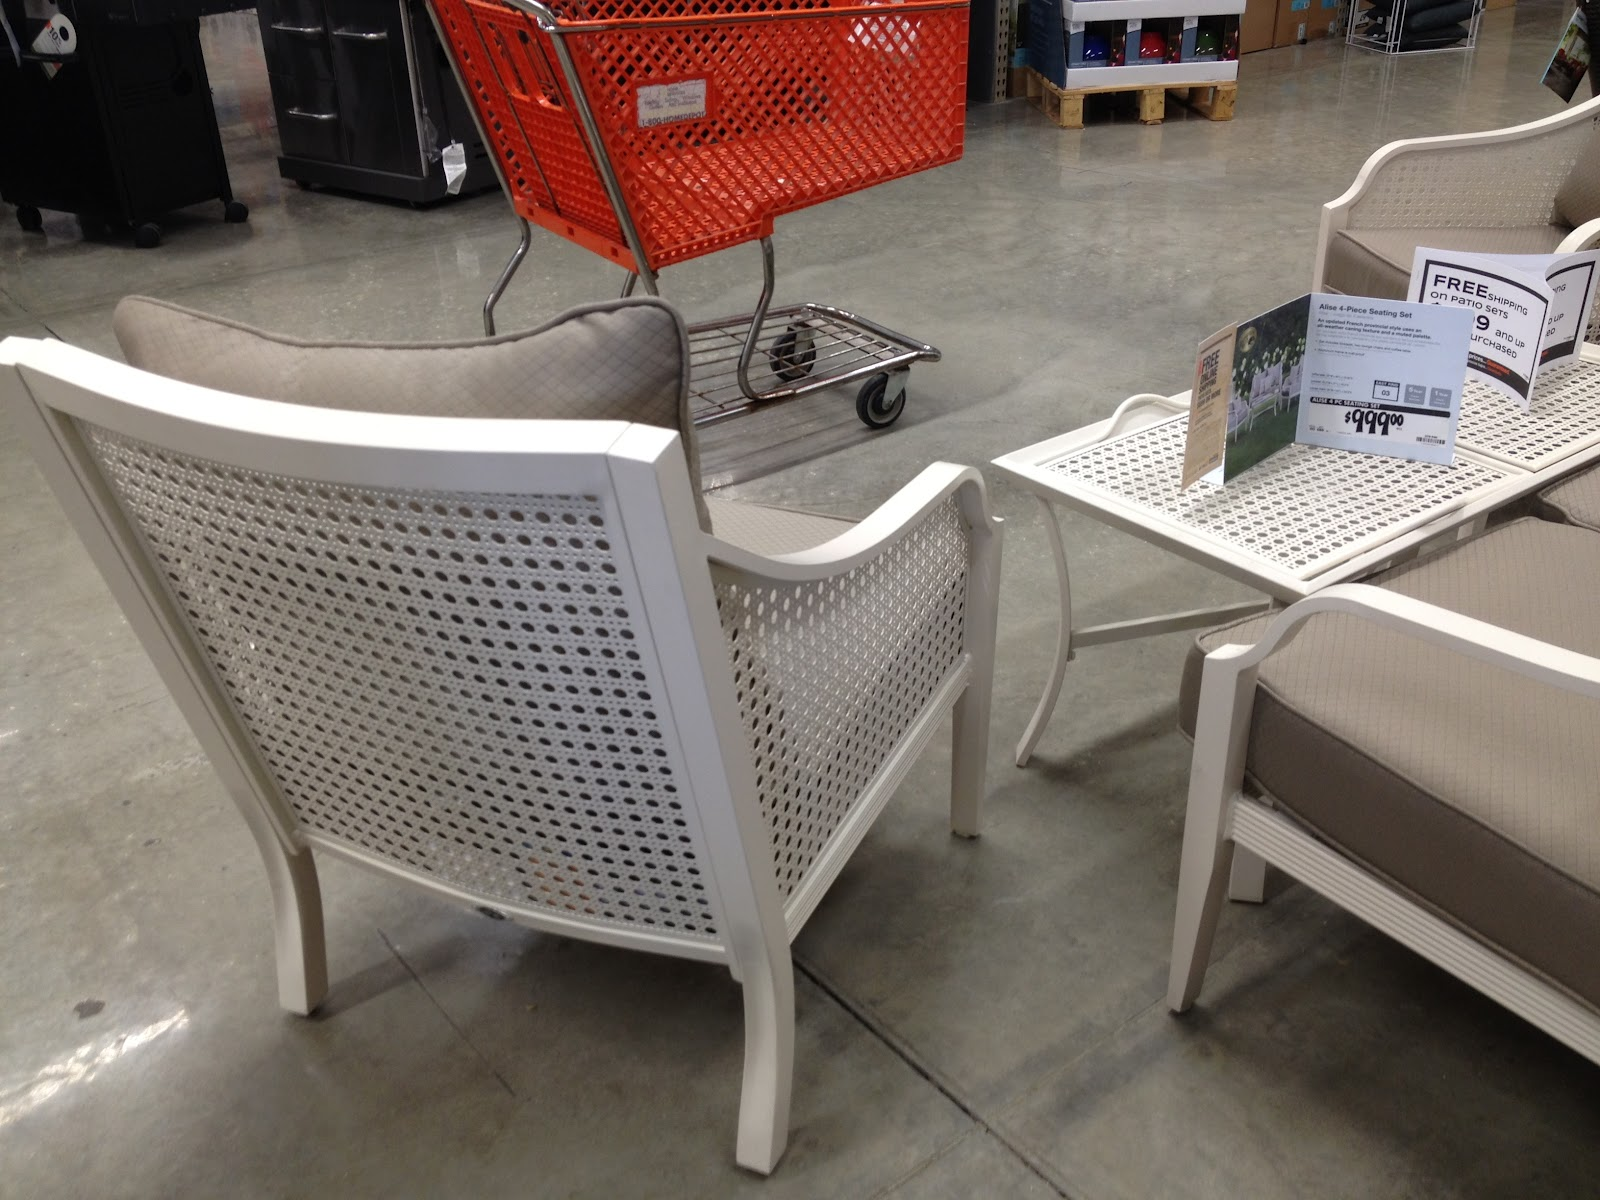 martha stewart patio chairs chair with cup holder inspire bohemia a little bit of this that